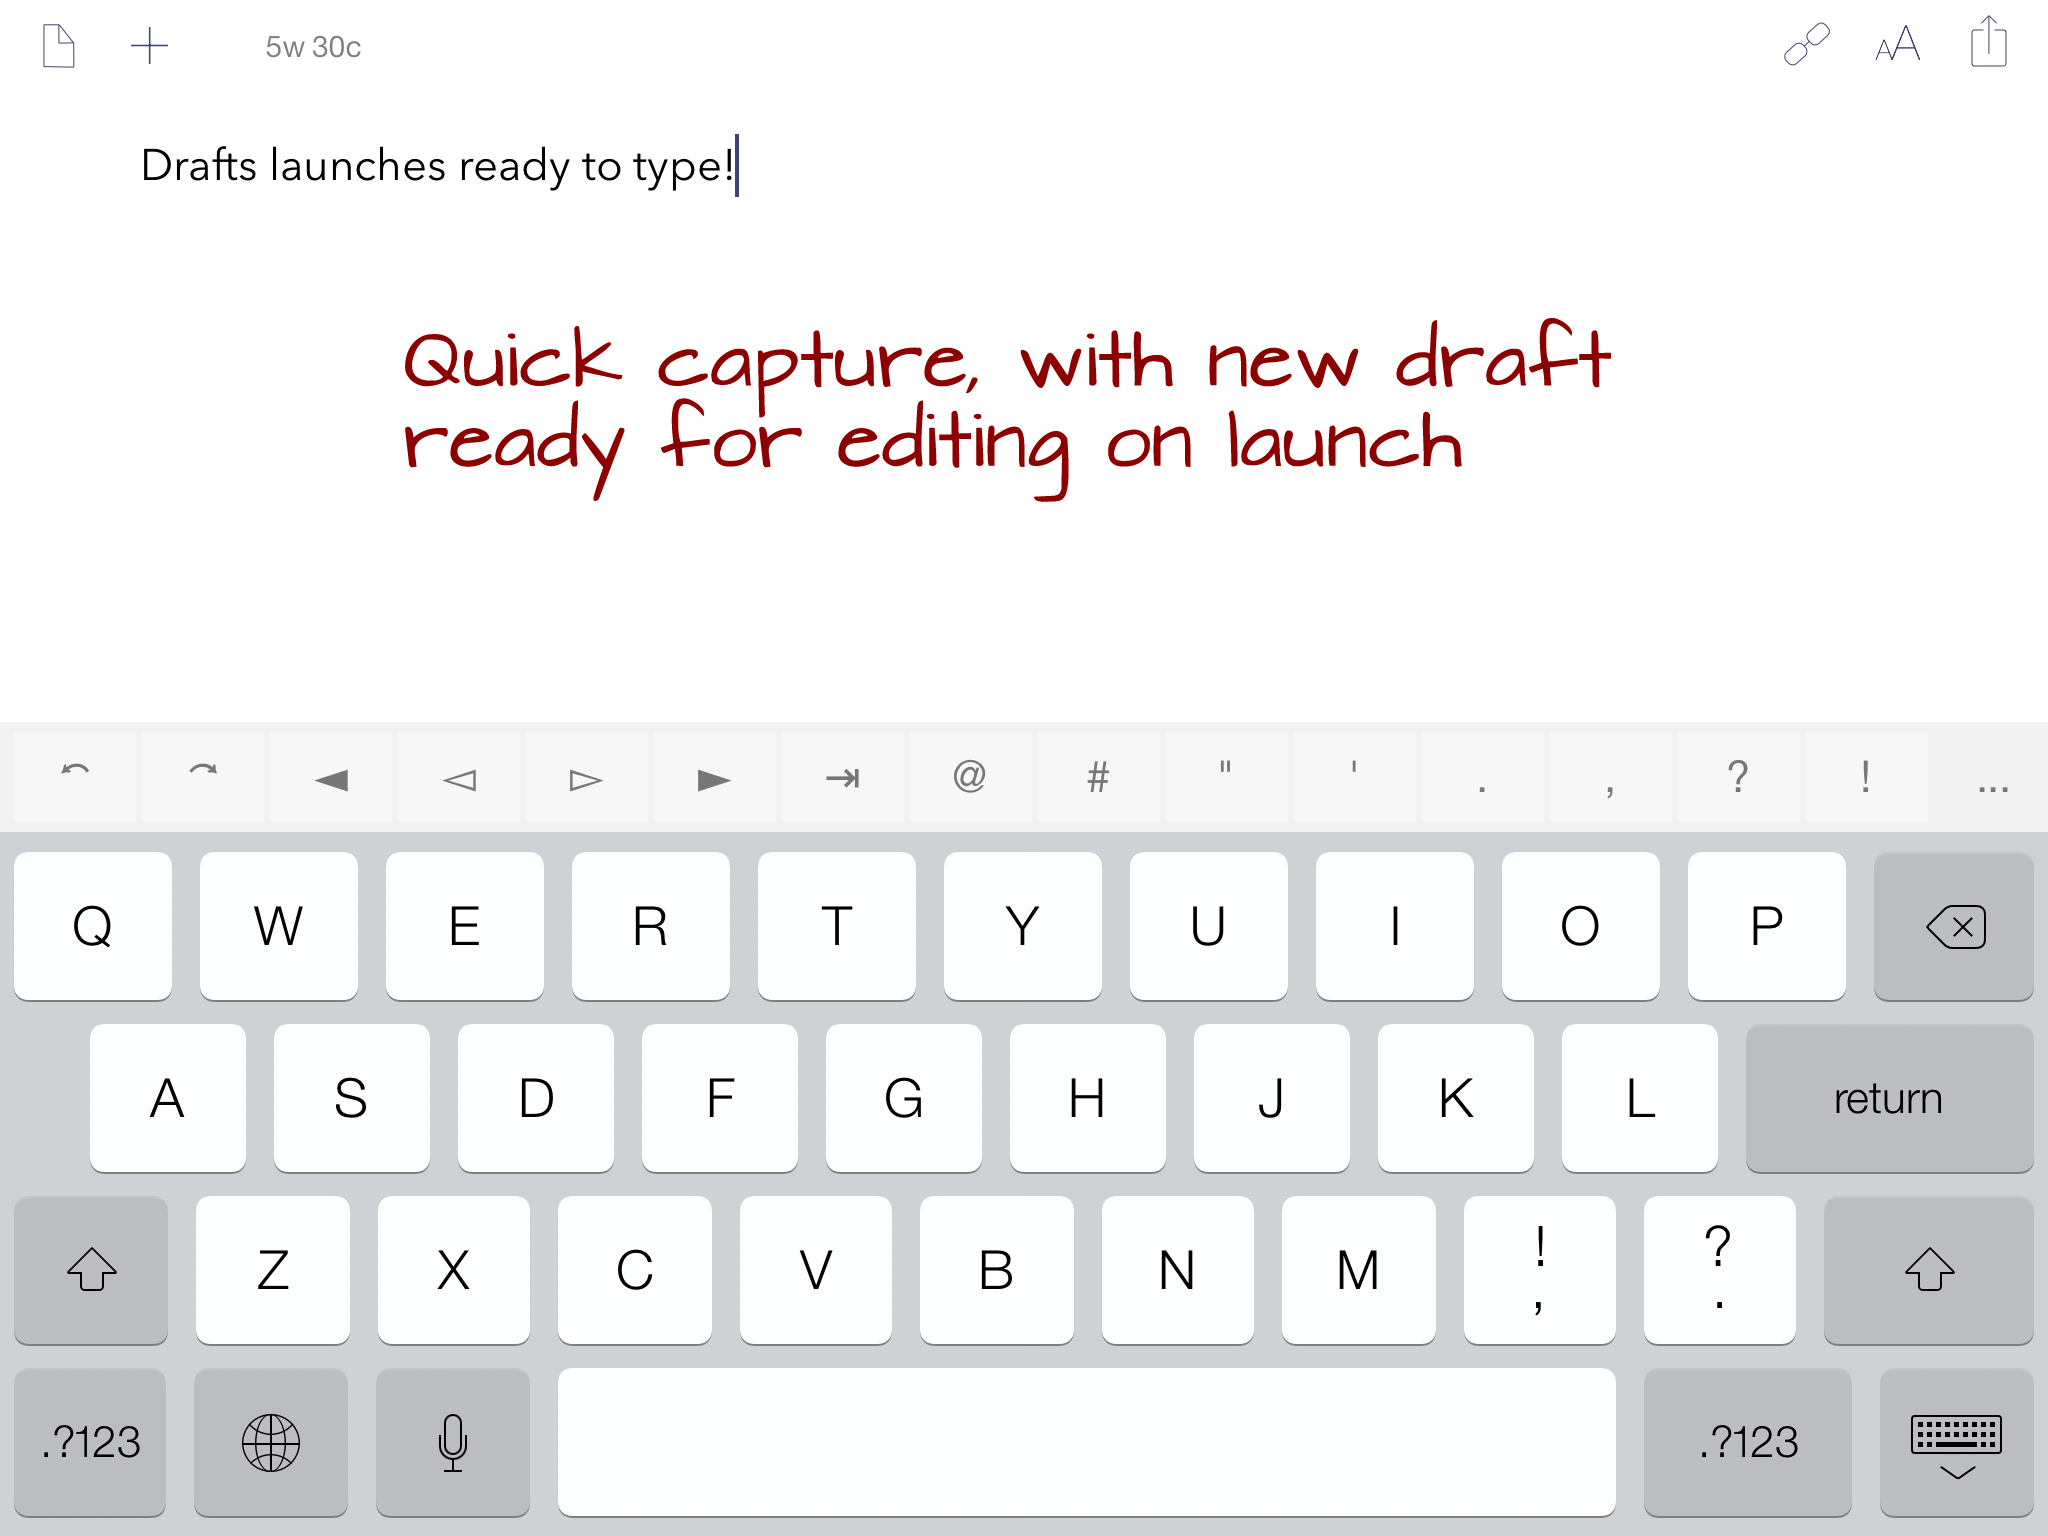 Drafts Gets An iOS 7 Makeover And Improvements With The Latest 3.5 Update